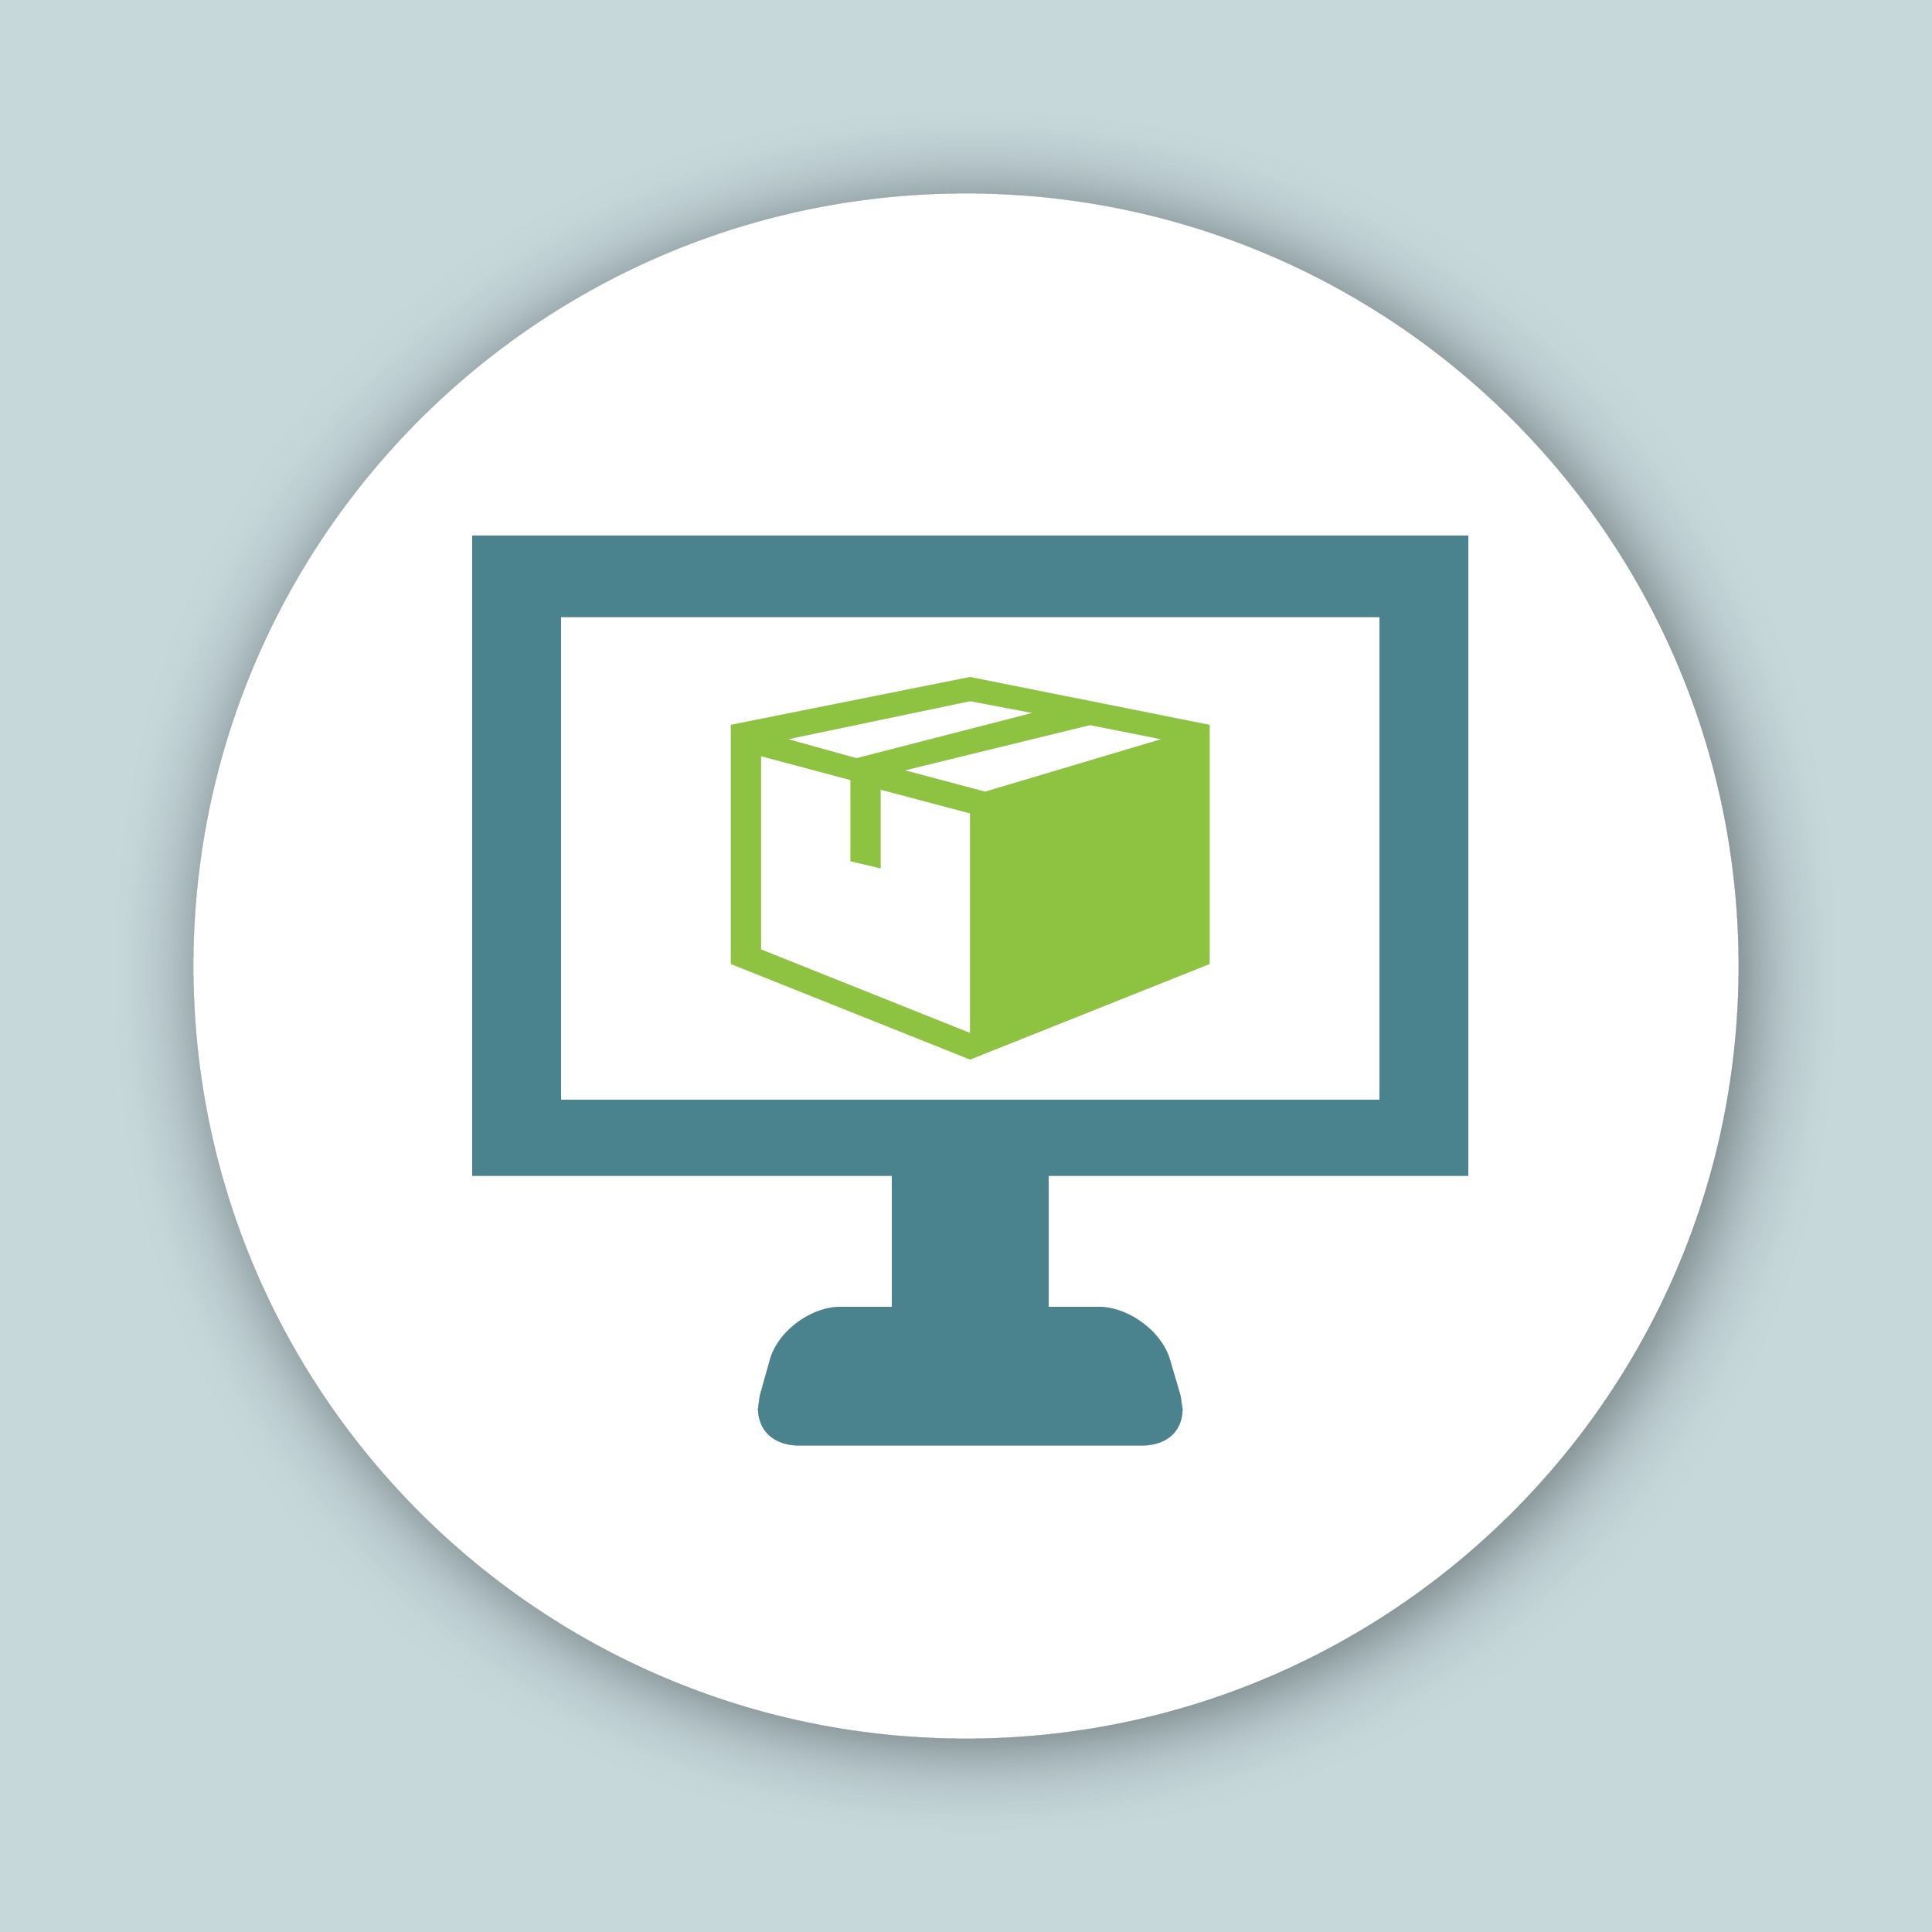 7 Packaging Tips for the E-Commerce Industry